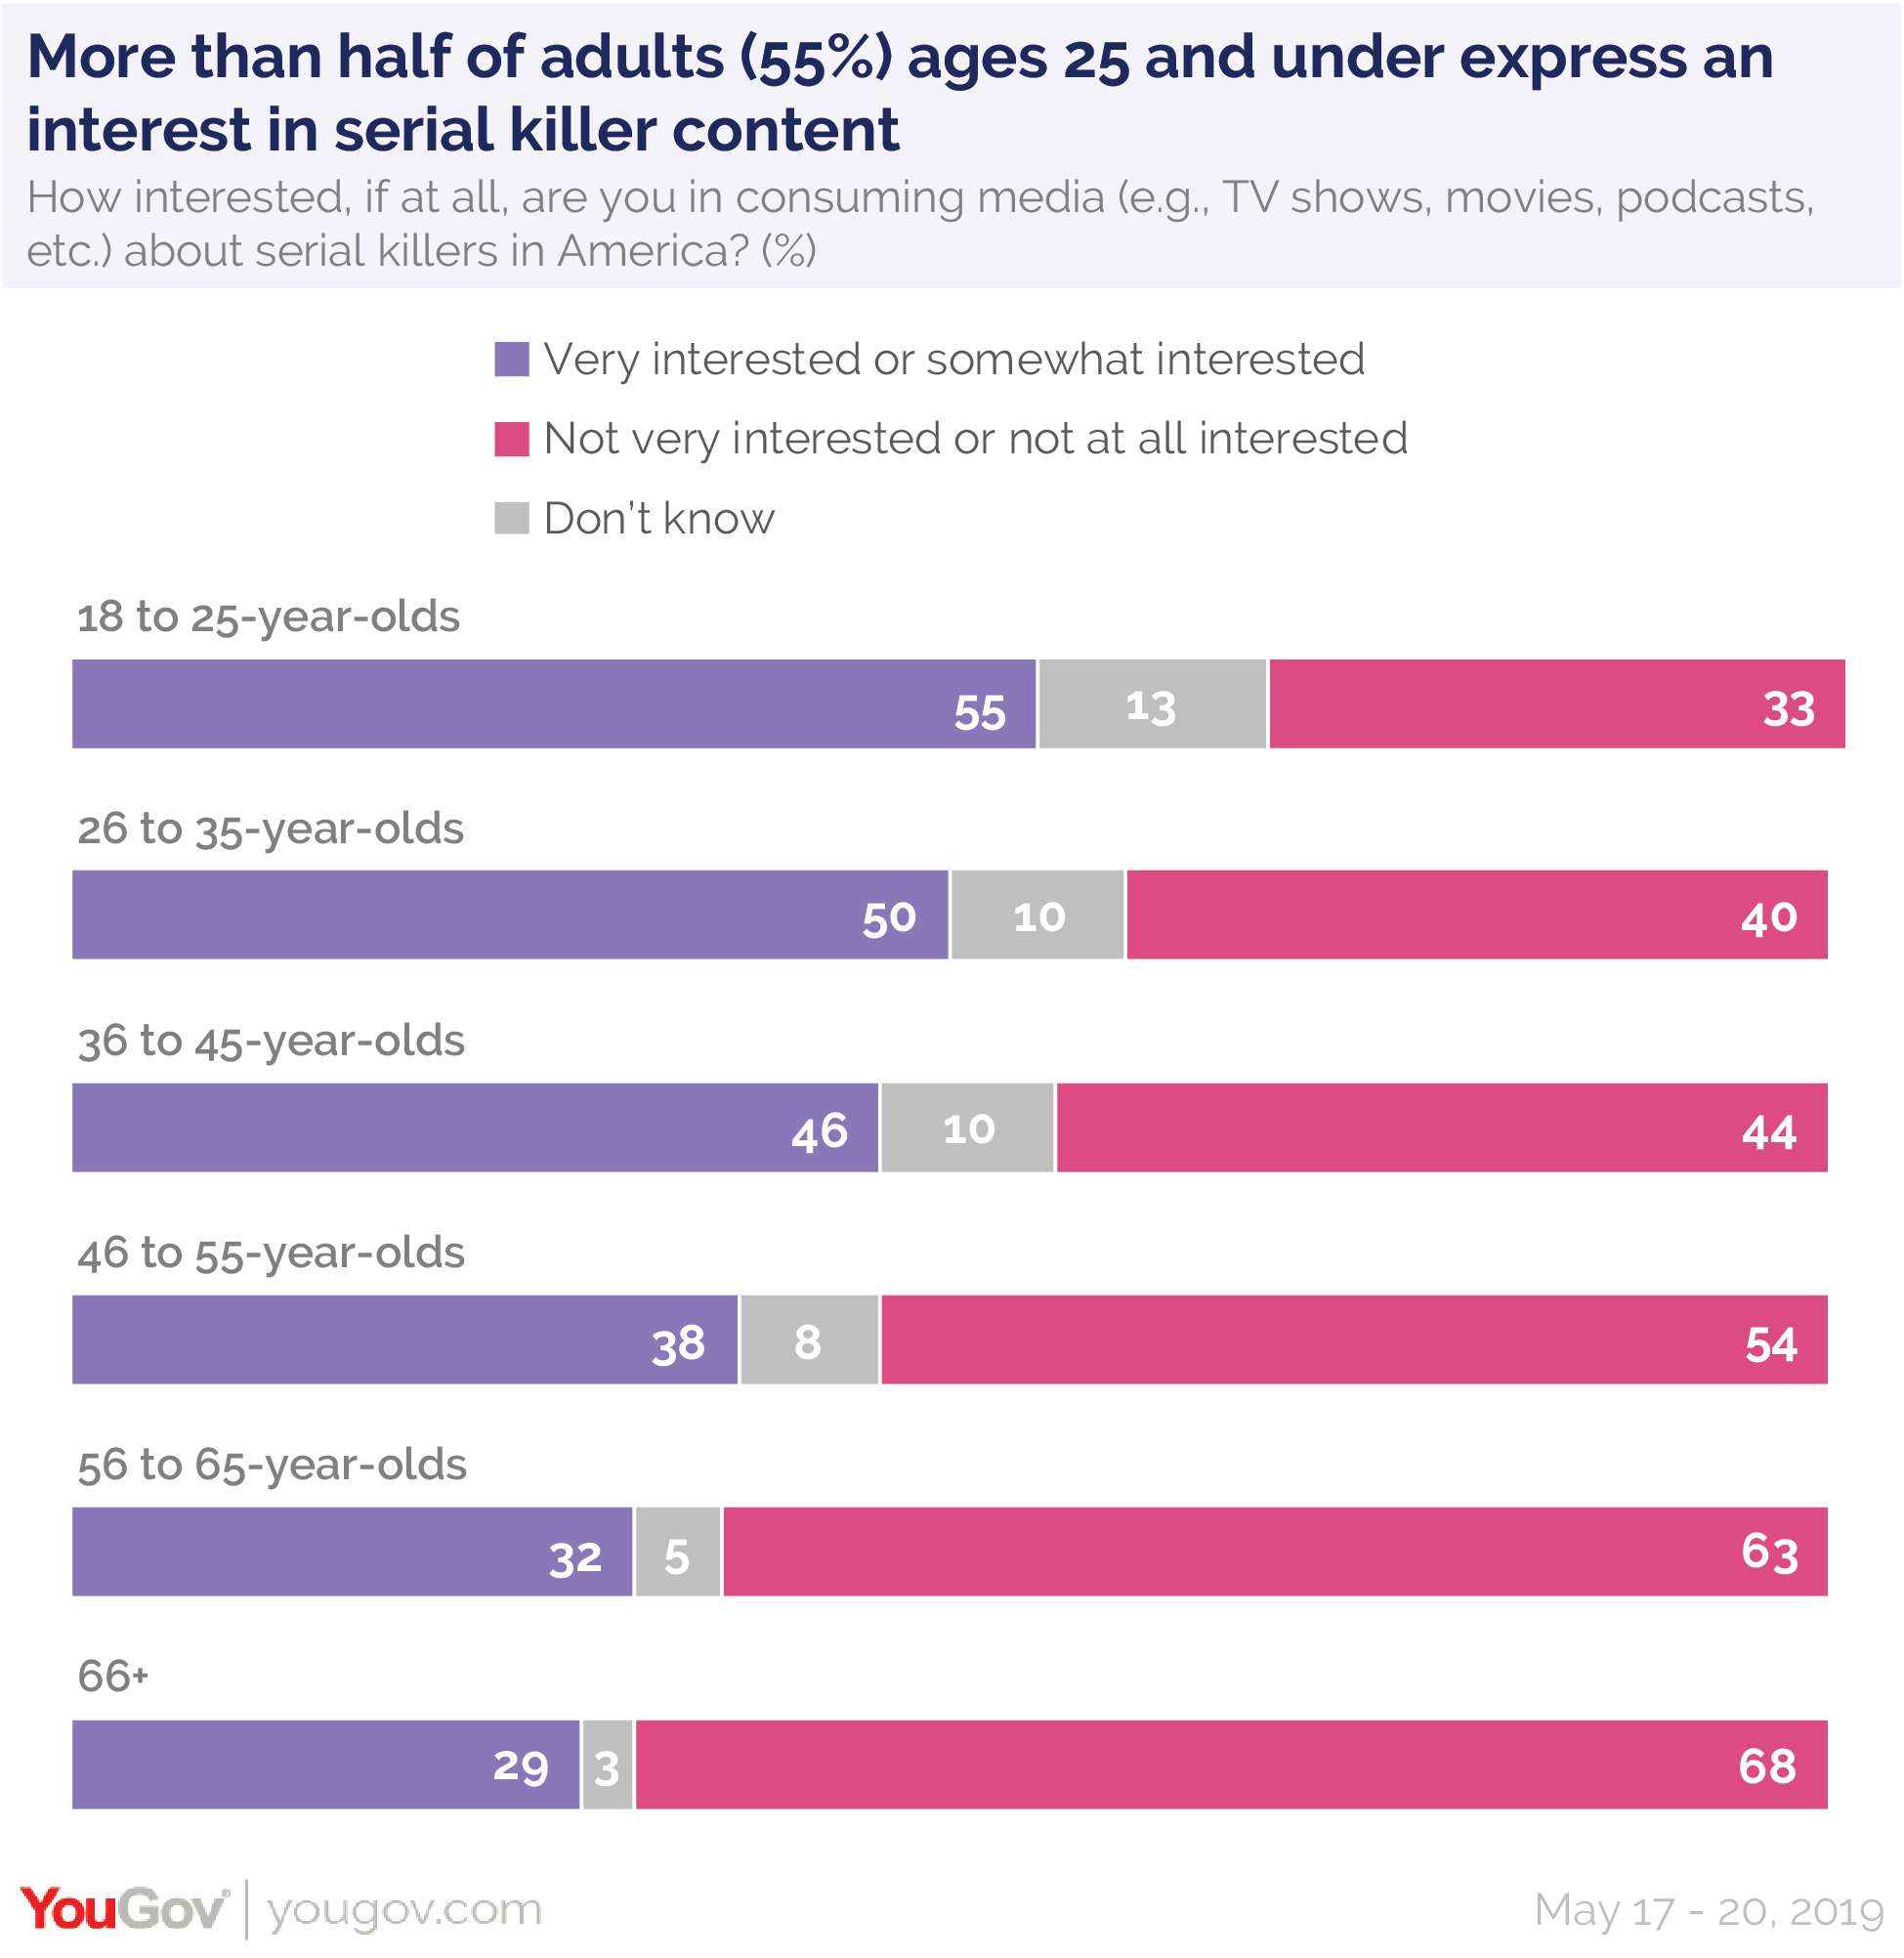 More than half of adults (55%) ages 25 and under express an interest in serial killer content